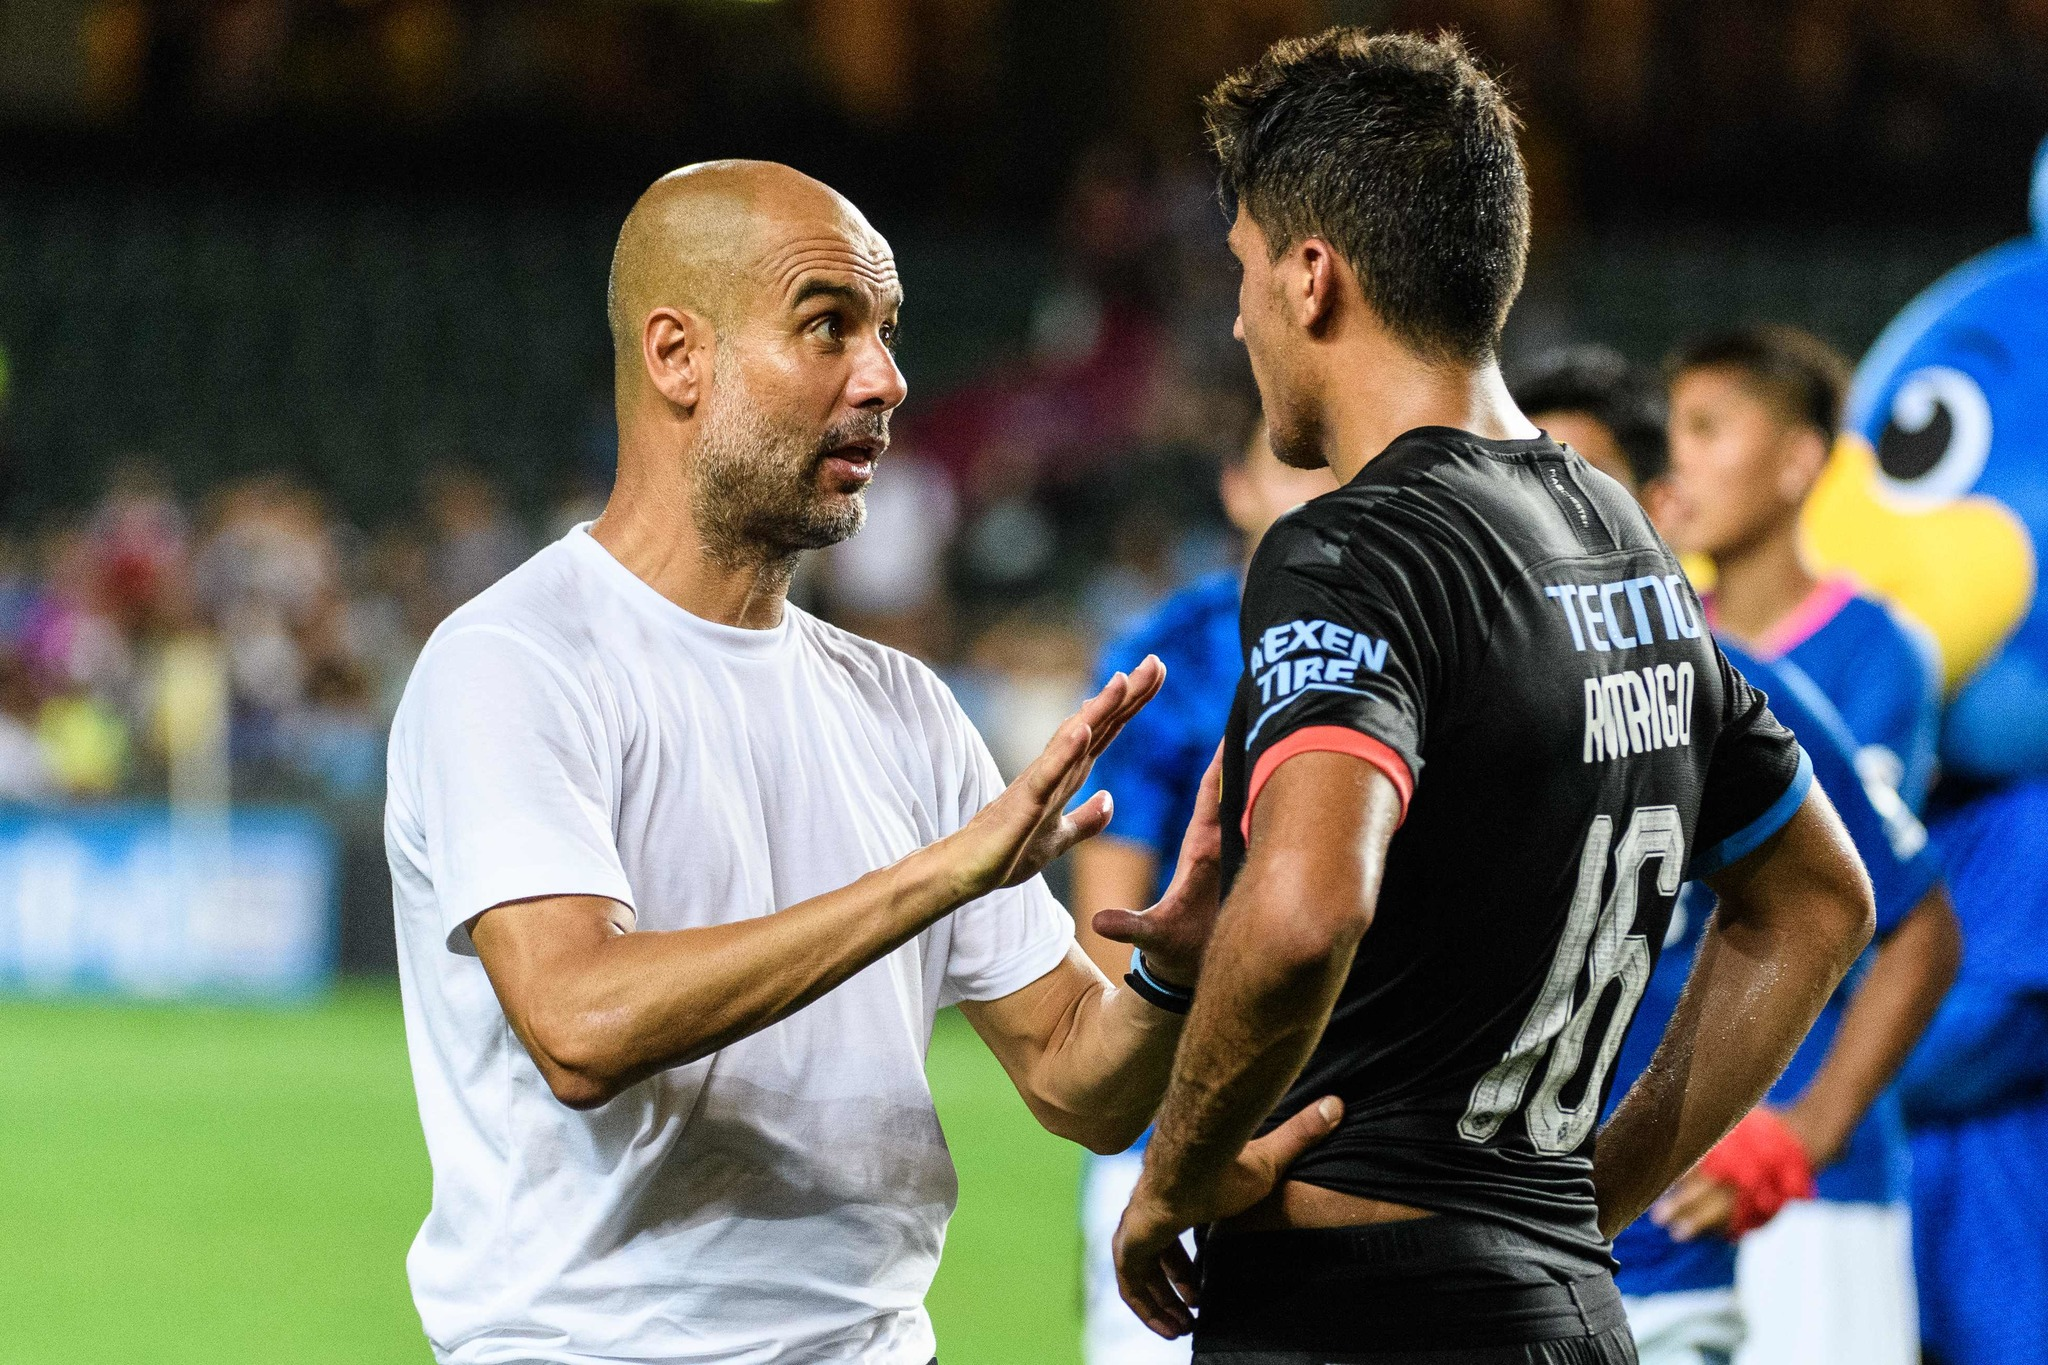 Manchester <HIT>City</HIT>s Spanish head-coach Pep Guardiola (L) speaks to teamplayer Spanish midfielder <HIT>Rodri</HIT> at the end of the friendly football match between English Premier League club Manchester <HIT>City</HIT> and Hong Kongs Kitchee at the Hong Kong Stadium, in Hong Kong on July 24, 2019. (Photo by Anthony WALLACE / AFP)